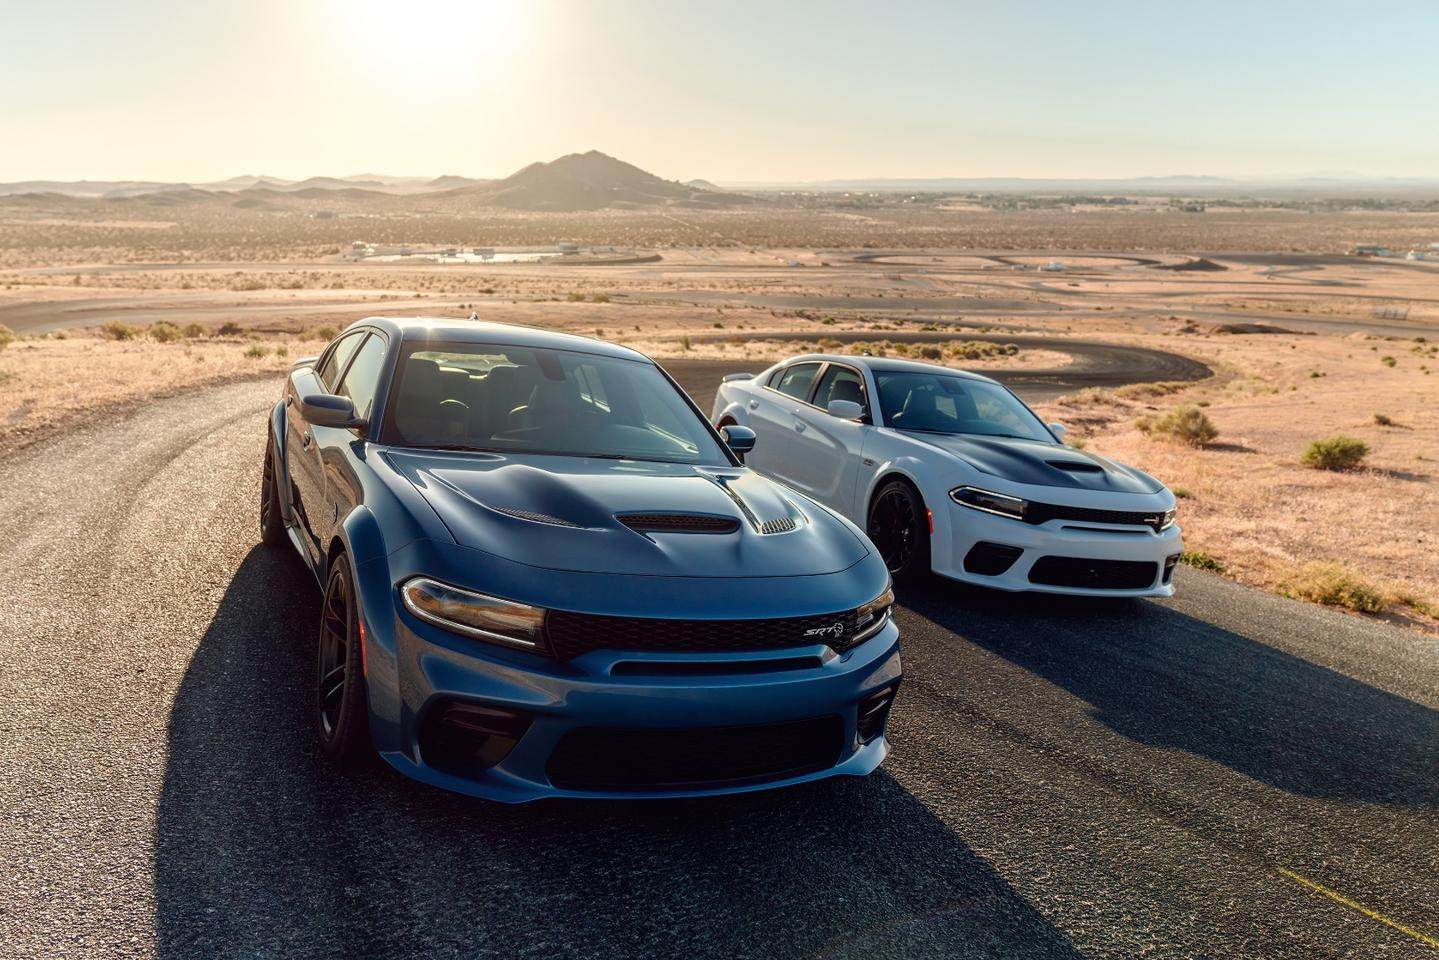 Nasty 2020 Widebody Dodge Chargers Encourage Bad Boys And